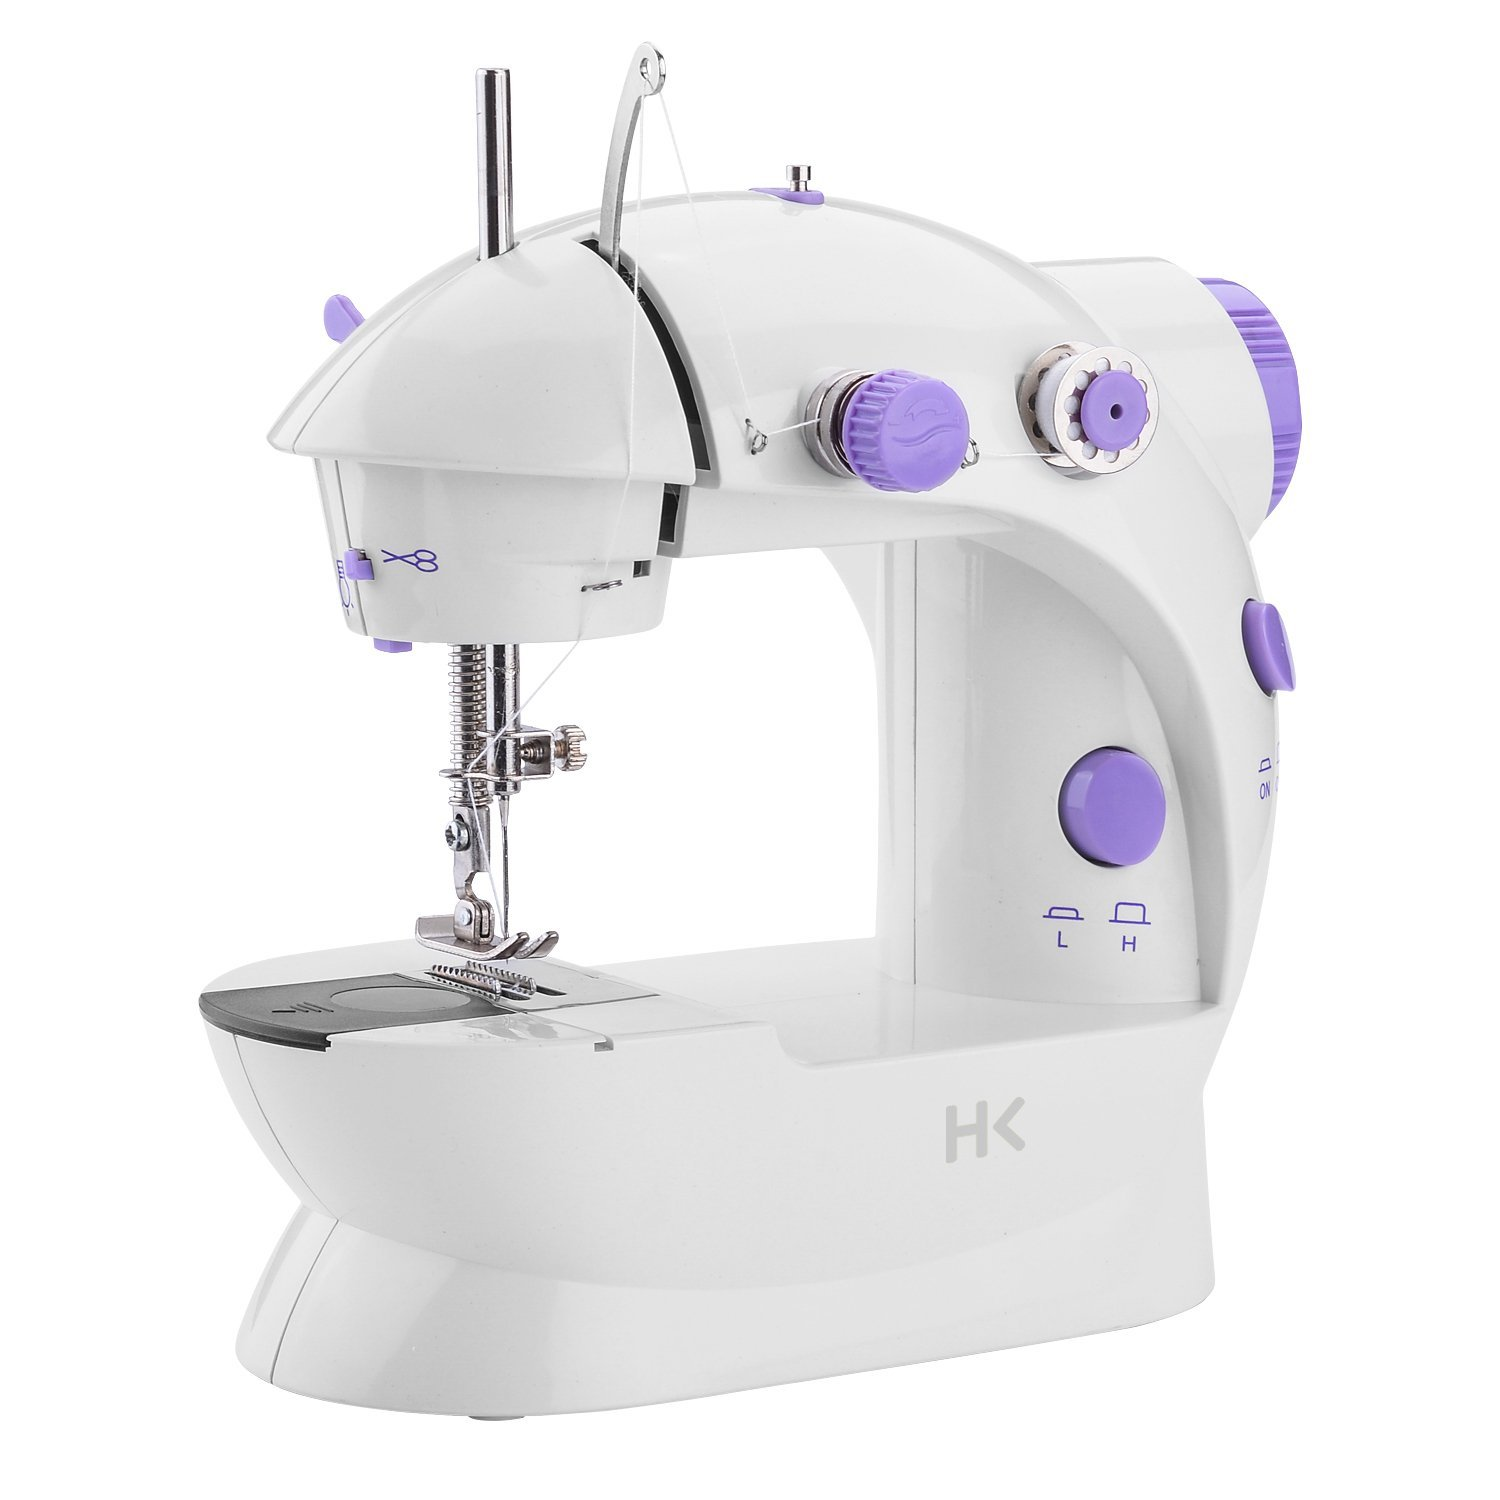 Fitnate Portable Sewing Machine with Double Speed Electric Crafting Sewing machine 2-Speed Double Thread with Light & Cutter, Foot Pedal for Household, Double Use for Power Supply or Battery